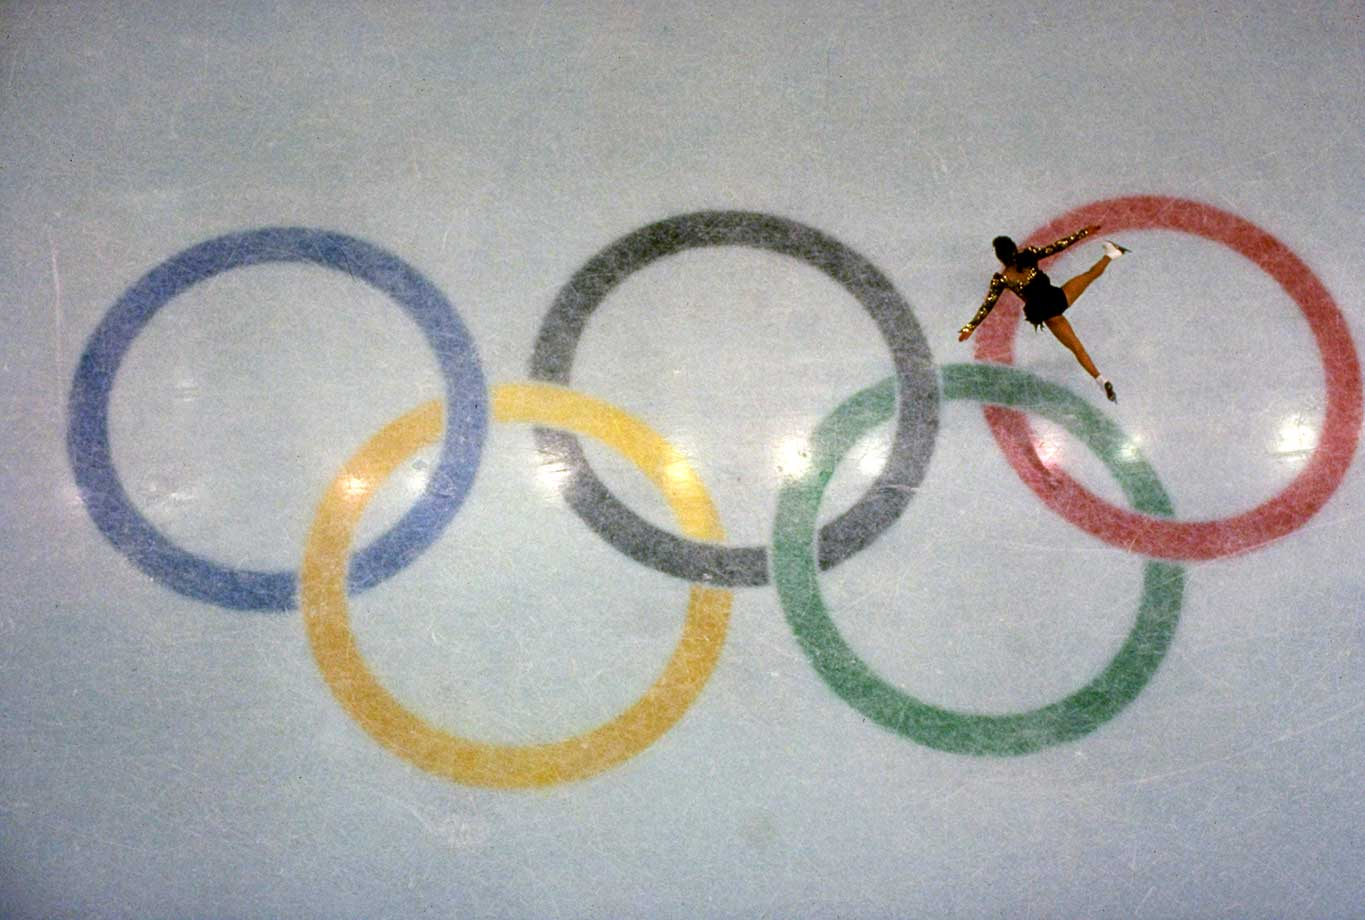 Kristi Yamaguchi in action during the women's singles free skating finals at the 1992 Olympics in Albertville, France